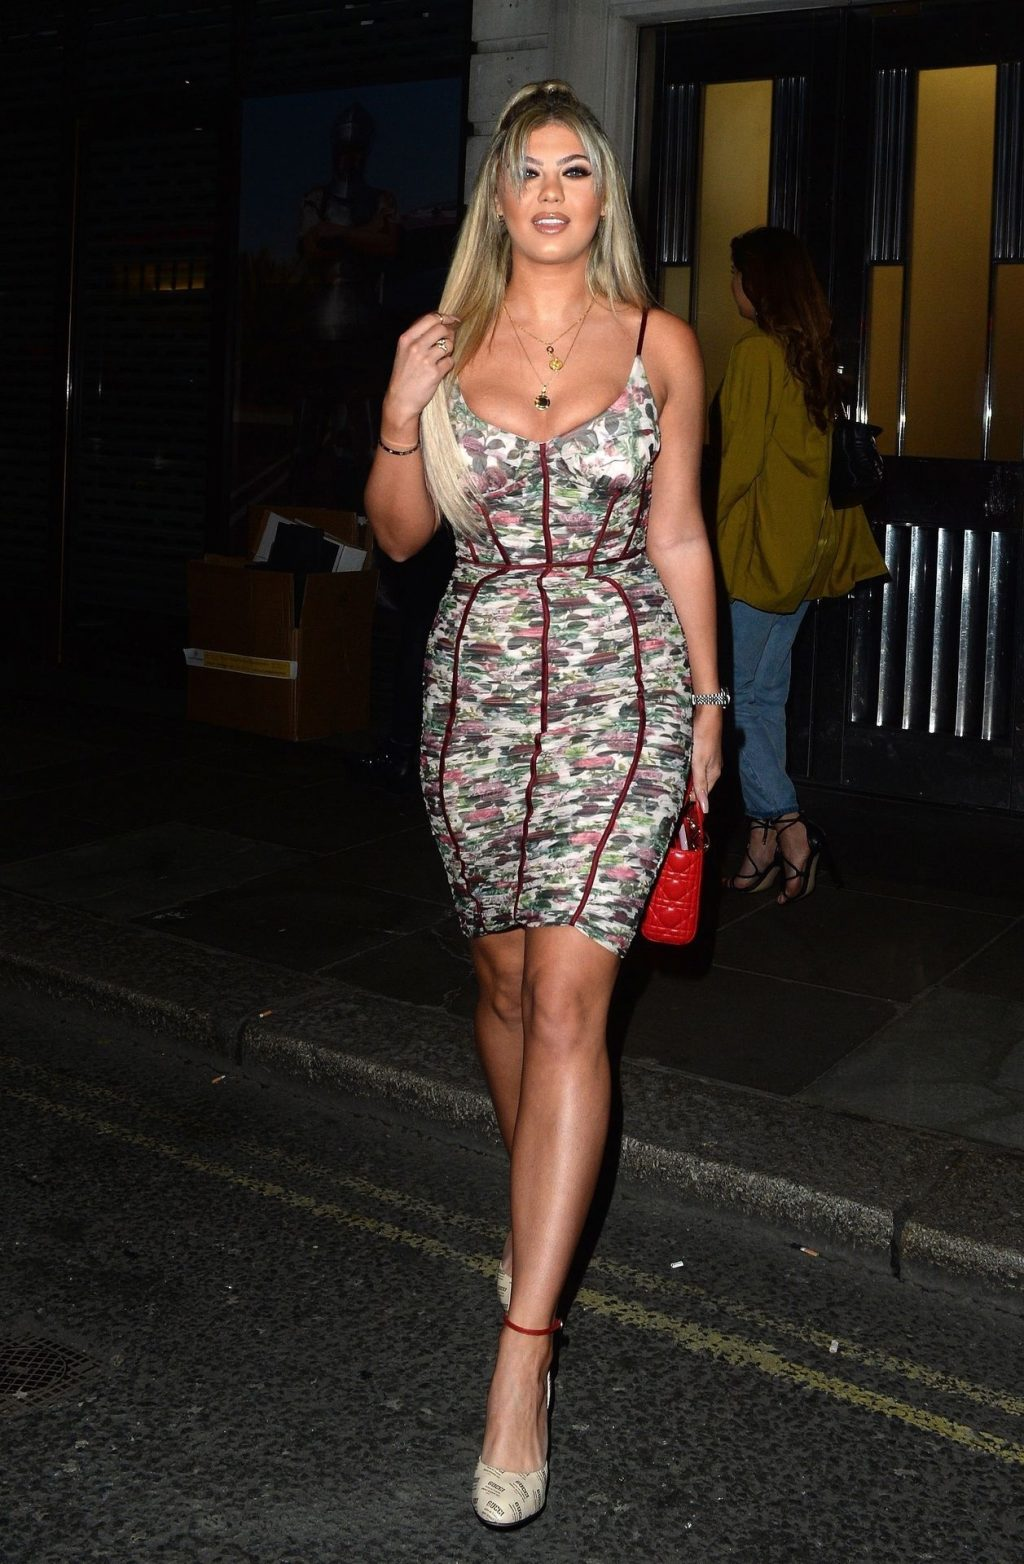 Belle Hassan is Seen Arriving at Hotel 100 Wardour to Celebrate Her Birthday (8 Photos)